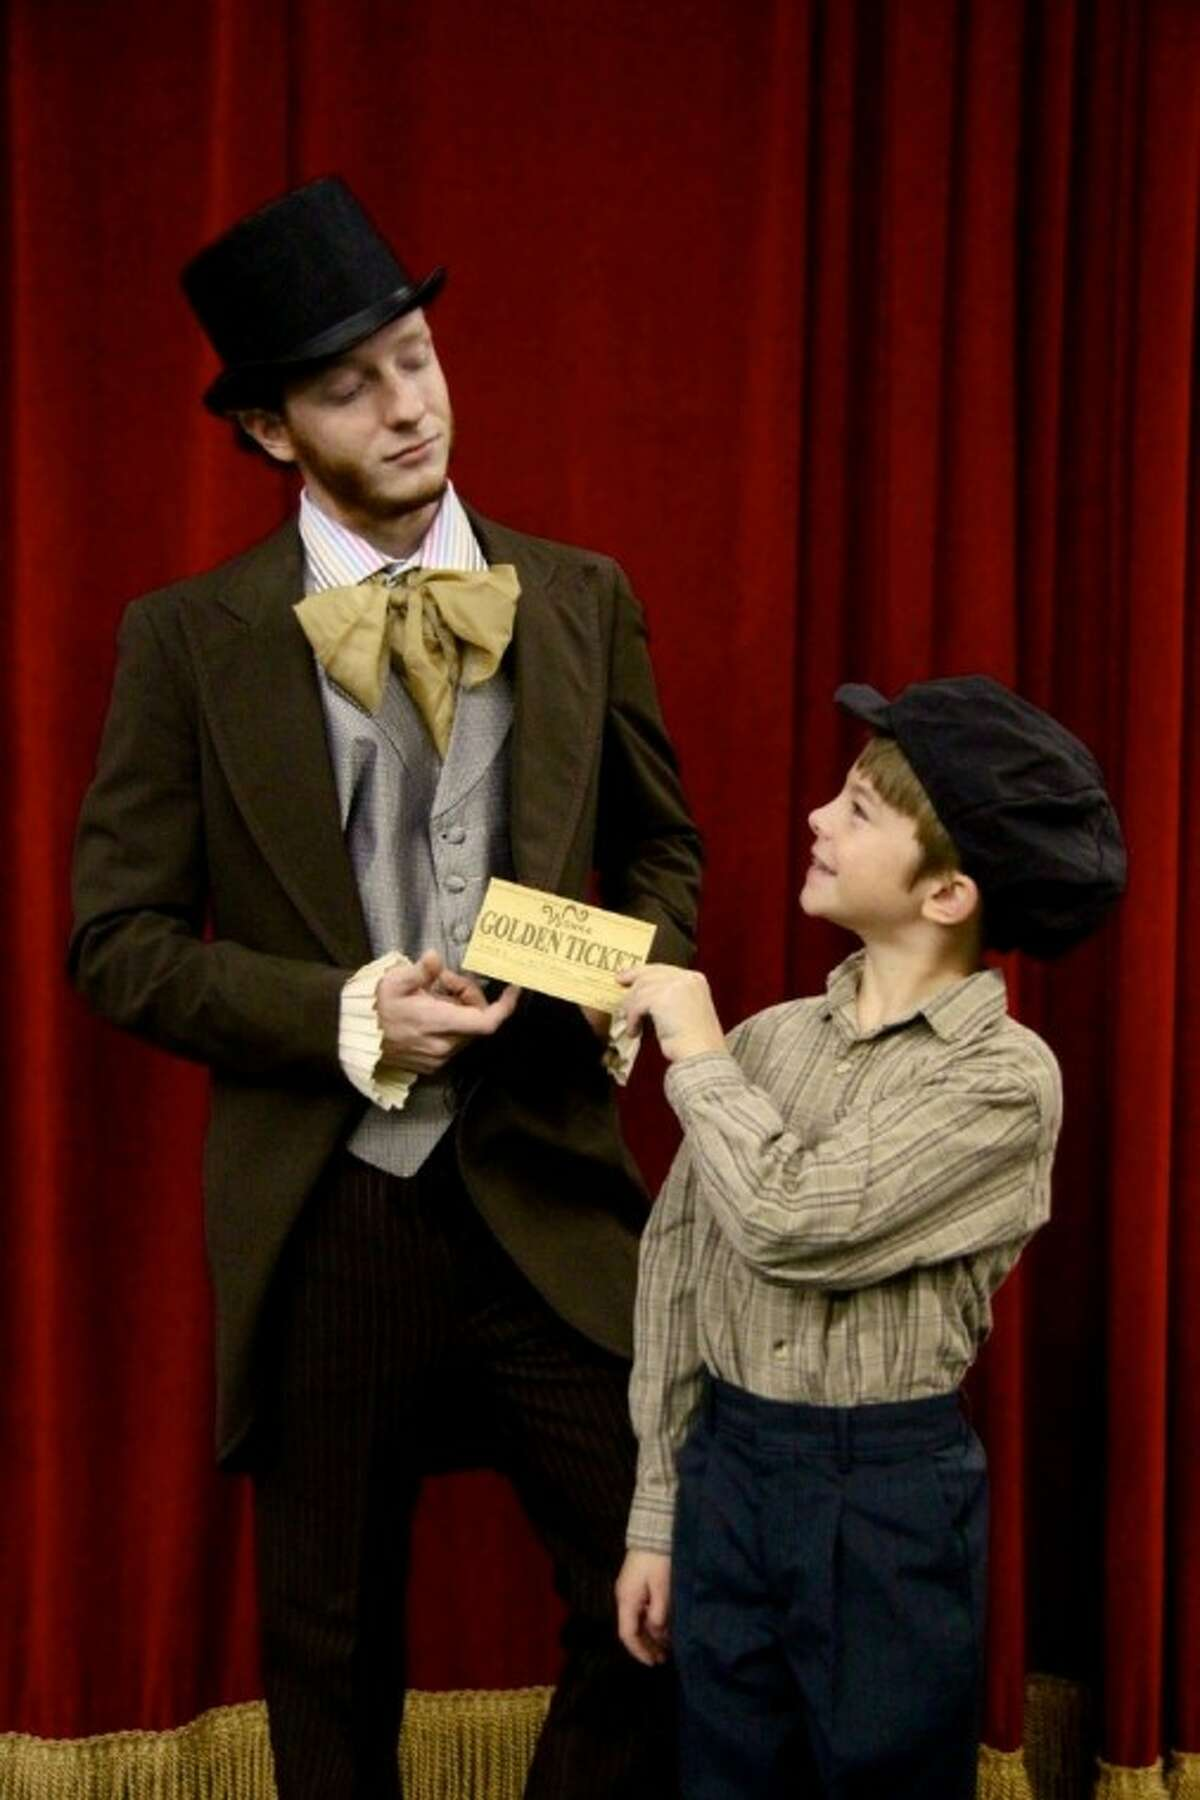 """Noah Mowry and Jason McClung rehearse a scene from """"Willy Wonka,"""" which opens Thursday, July 28, at the Royal Academy of Fine Arts in Webster."""